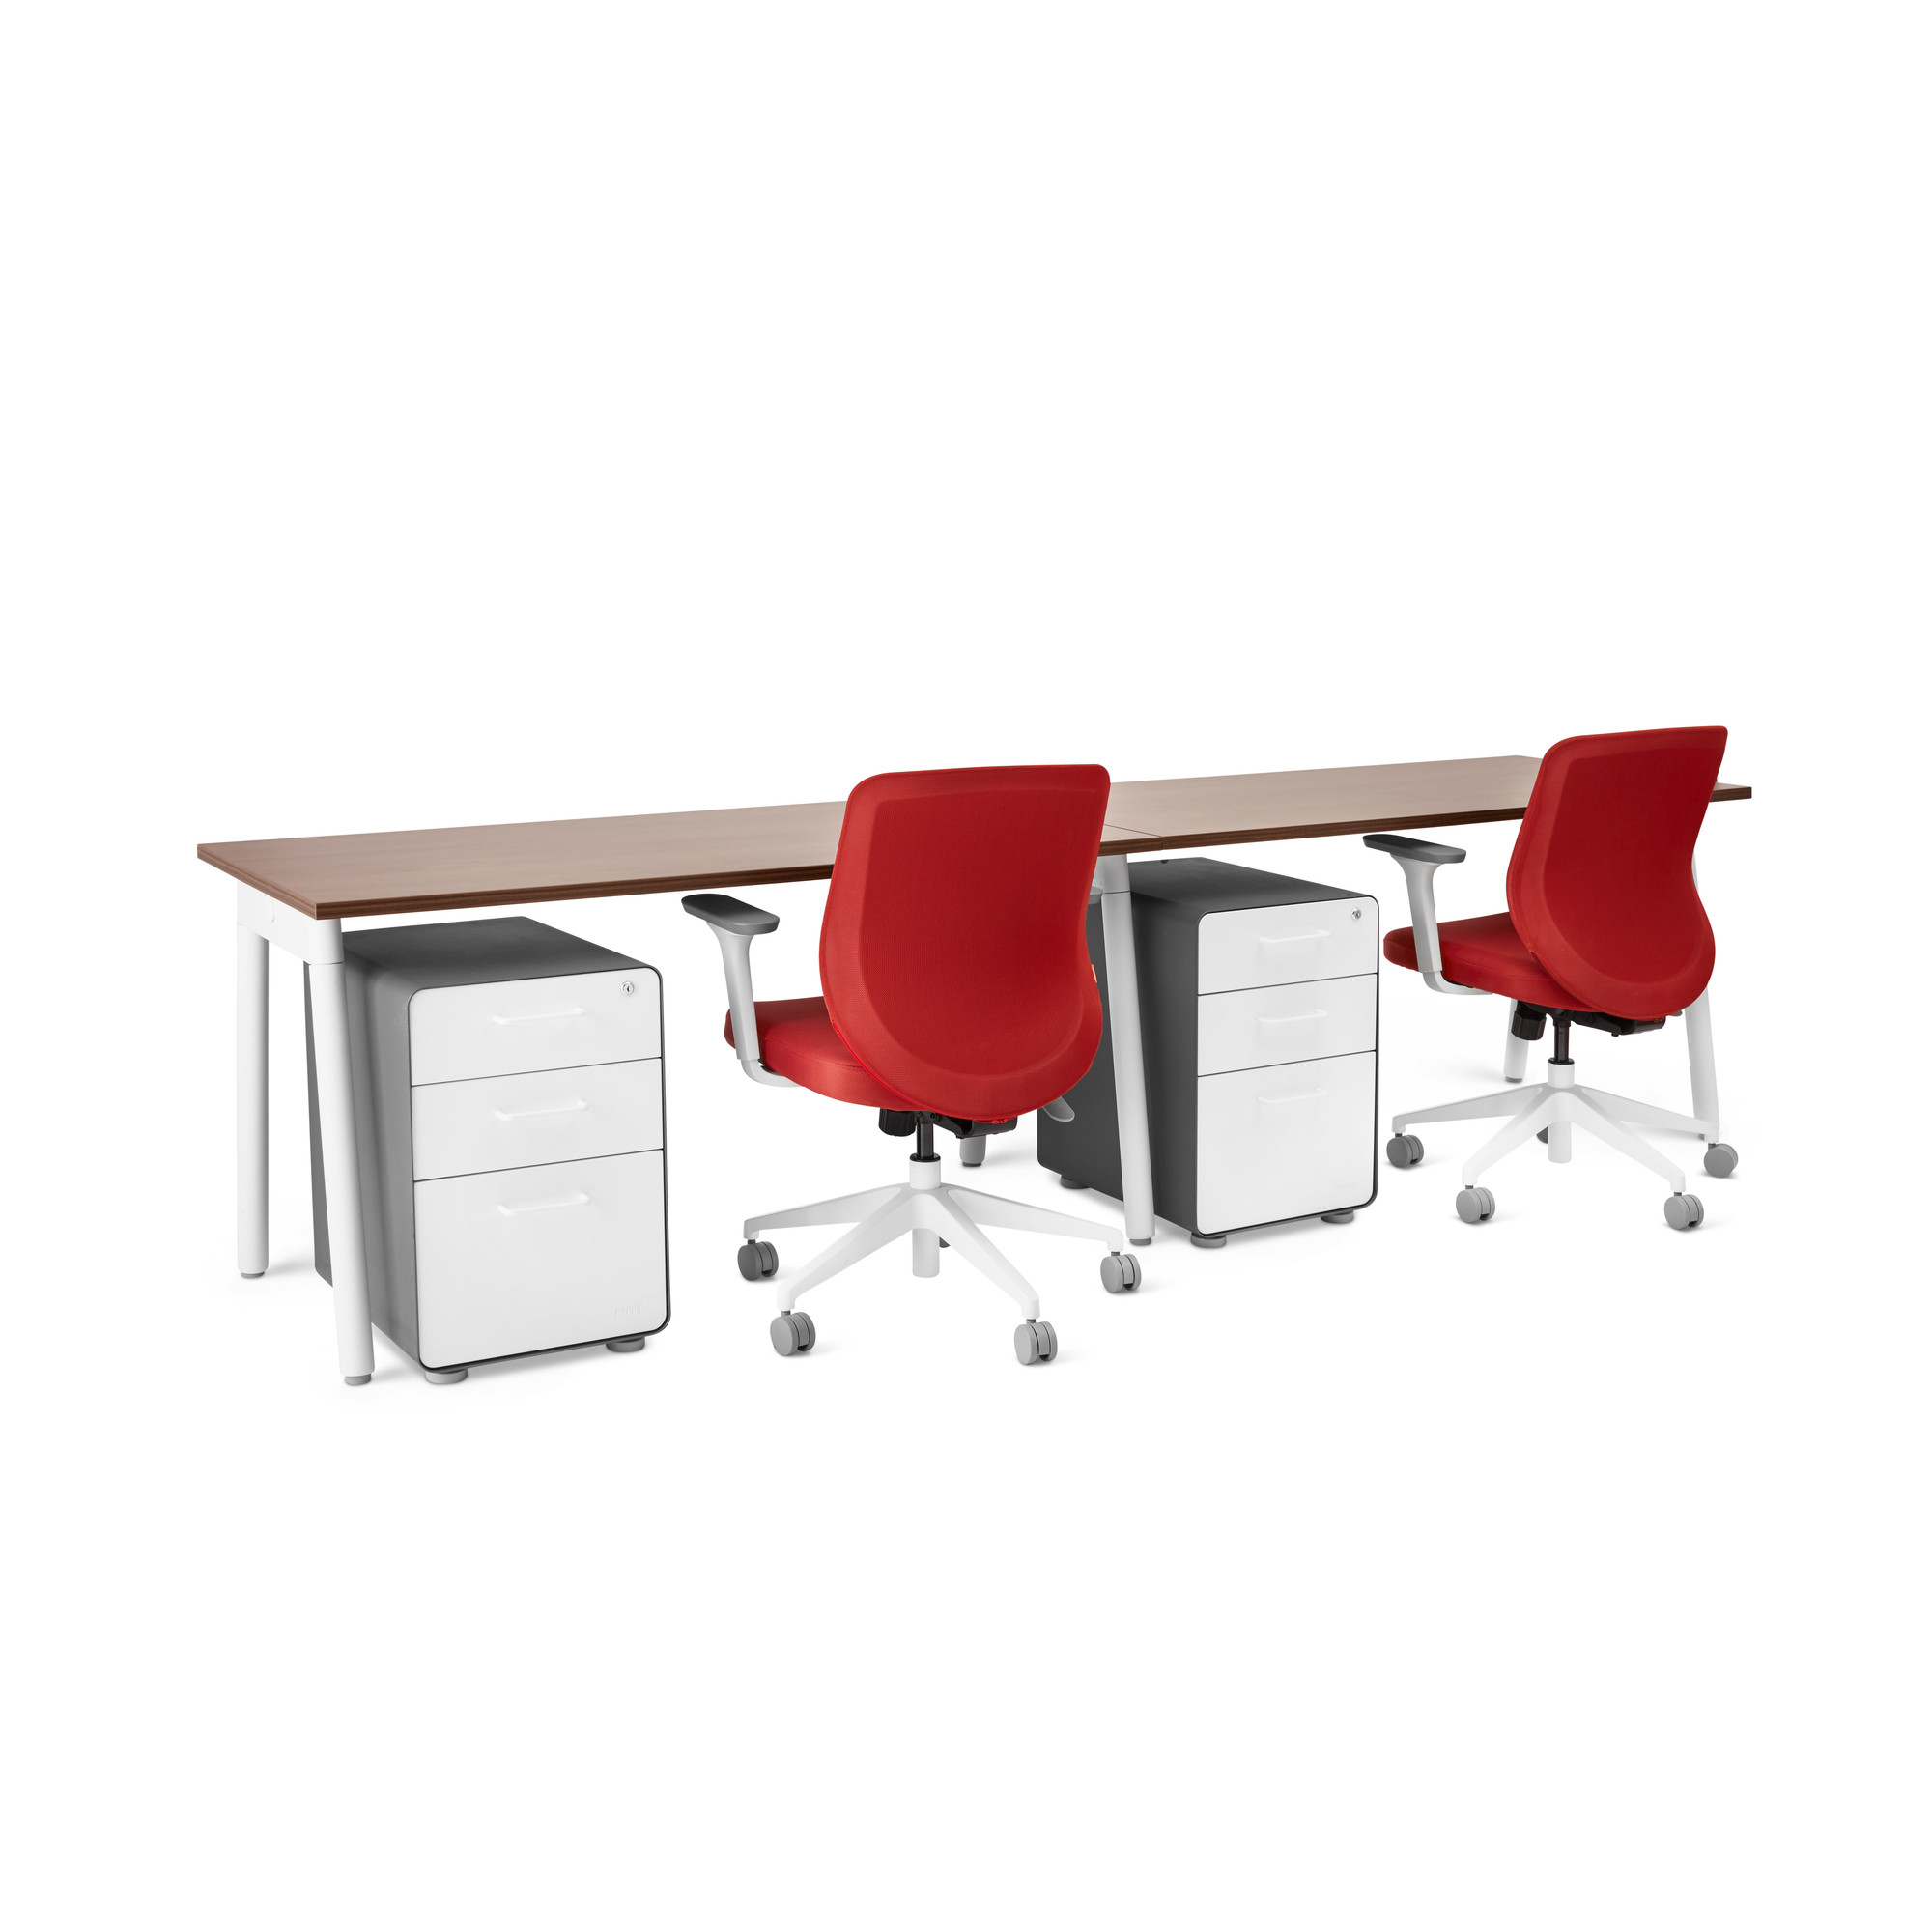 White walnut office furniture Steelcase Series Single Desk For 2 Walnut 57 Poppin Series Single Desk For 2 57